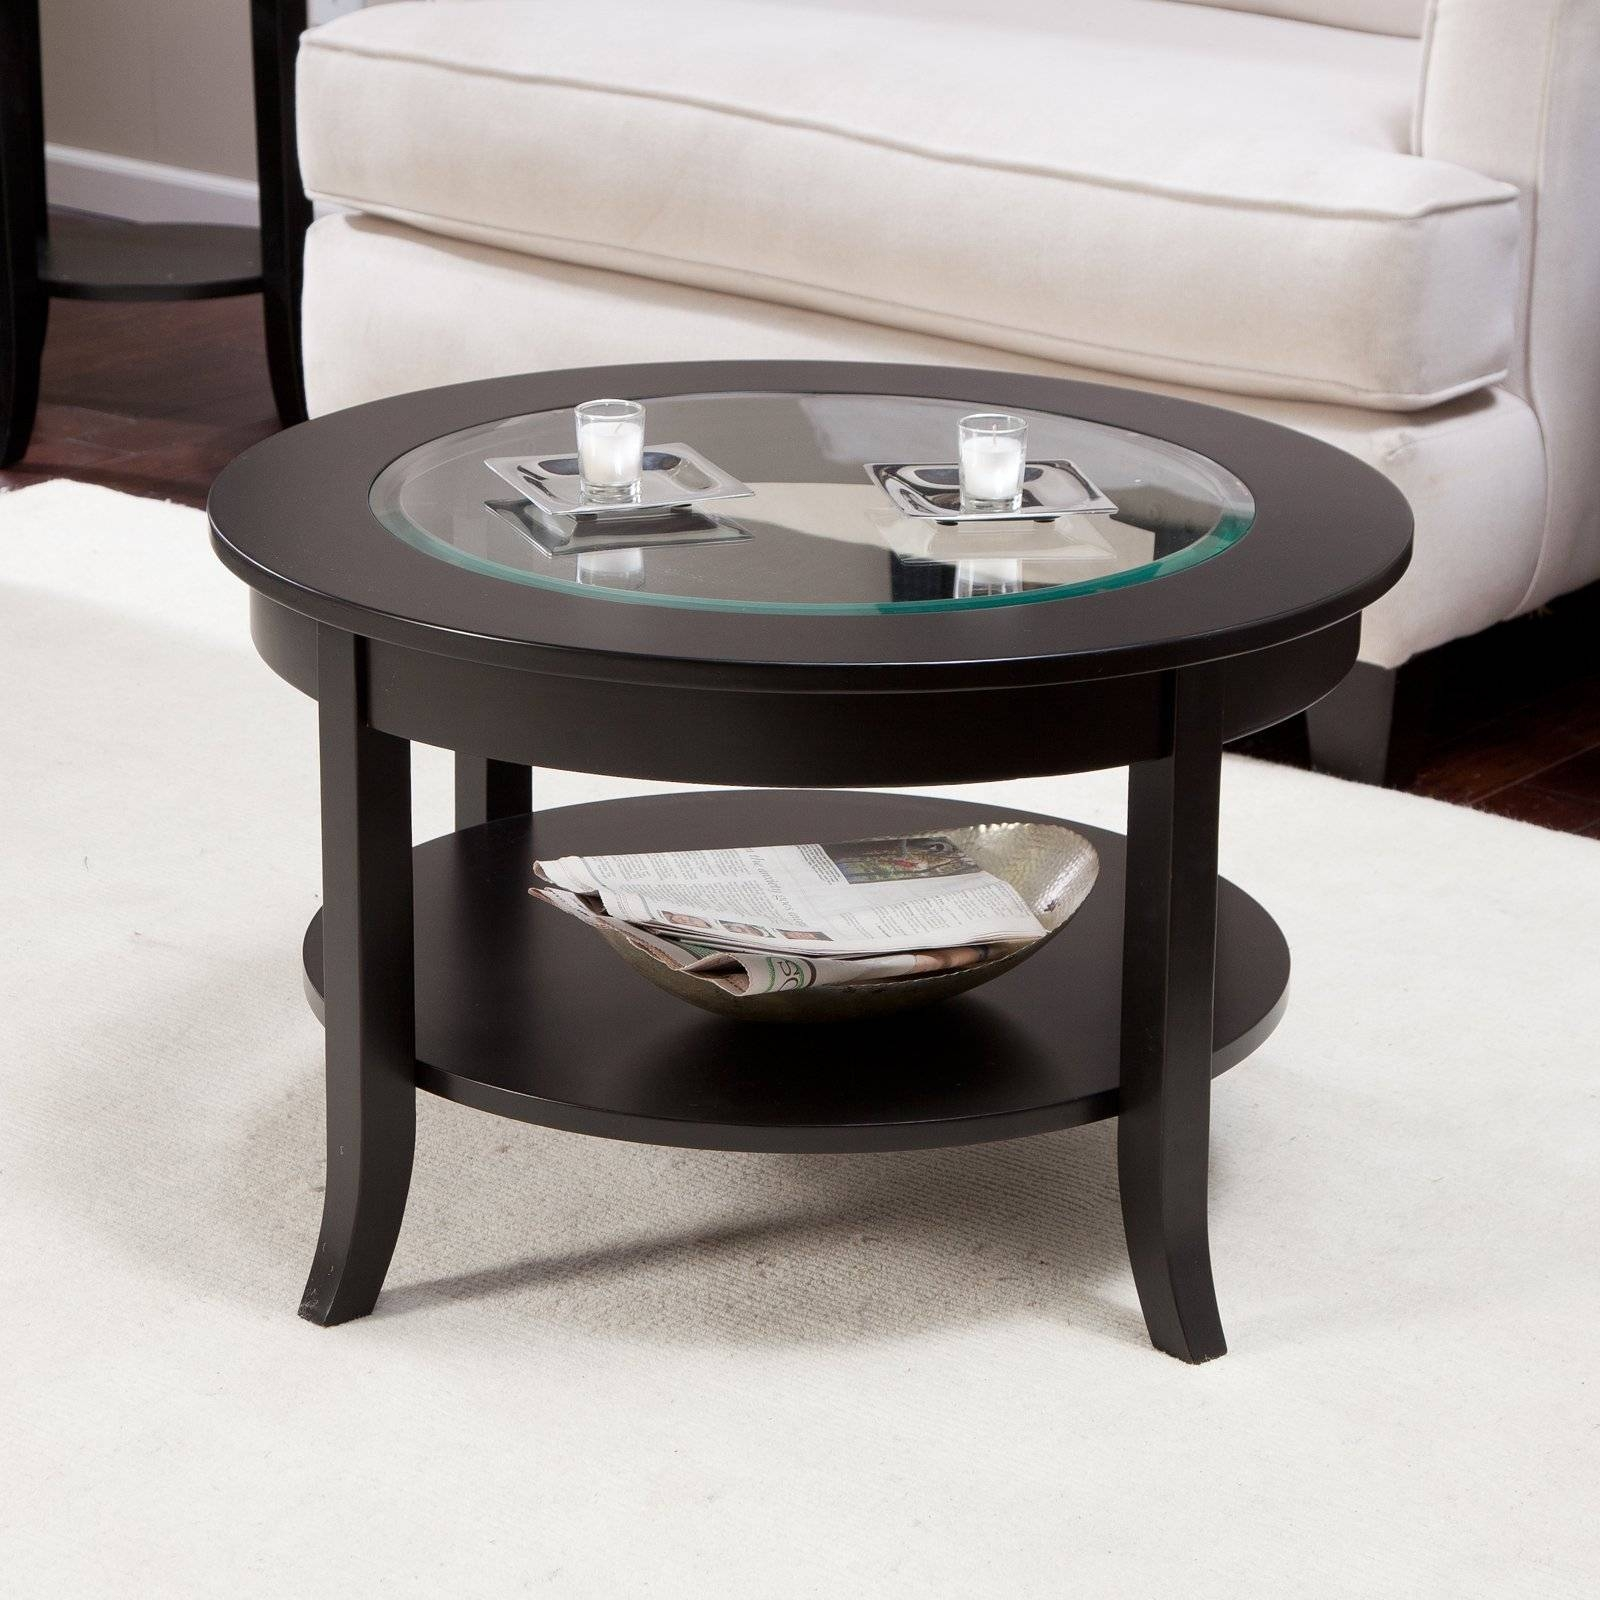 Eaton Coffee Table | Hayneedle with regard to Round Glass and Wood Coffee Tables (Image 7 of 30)